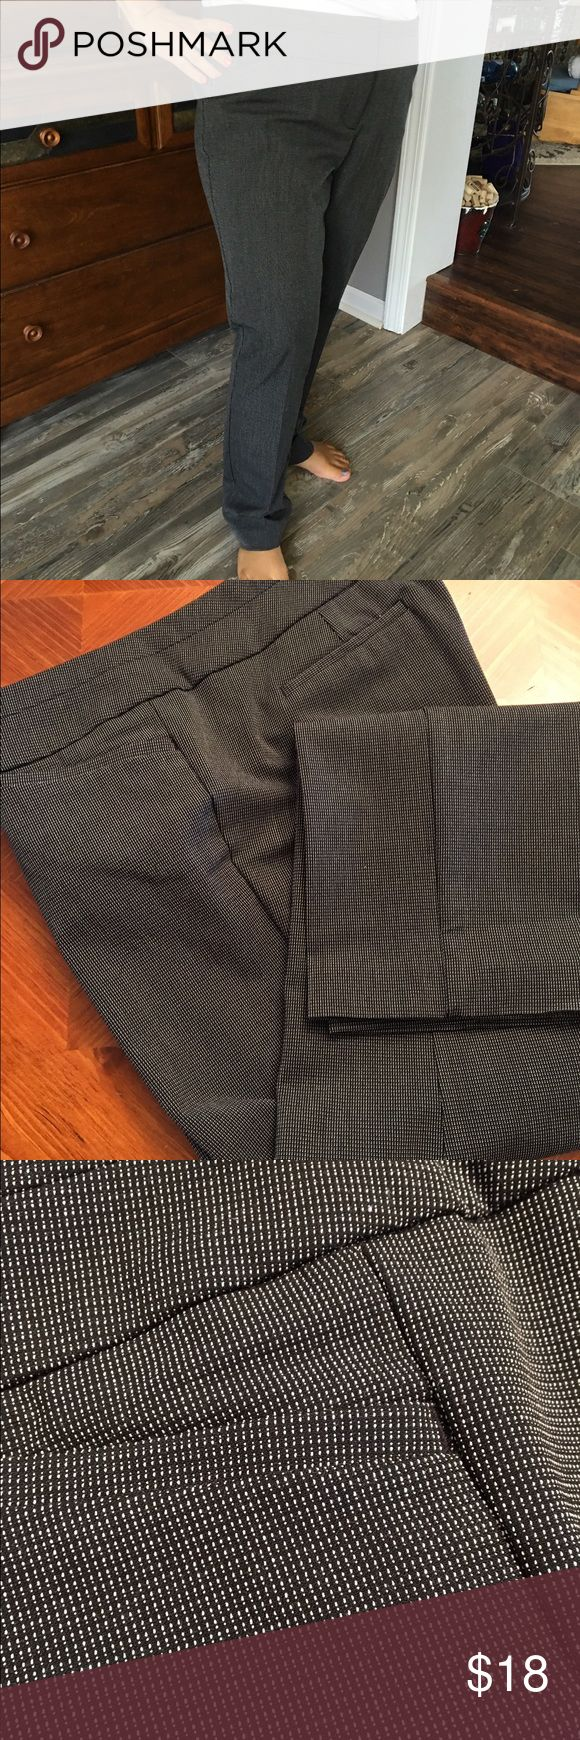 Great fit and very flattering ladies pants These black with white stitch pants are very slimming.  Modern fit Worthington pants with tapered legs and a slight stretch.  You will love these.  30 inch inseam. Worthington Pants Trousers